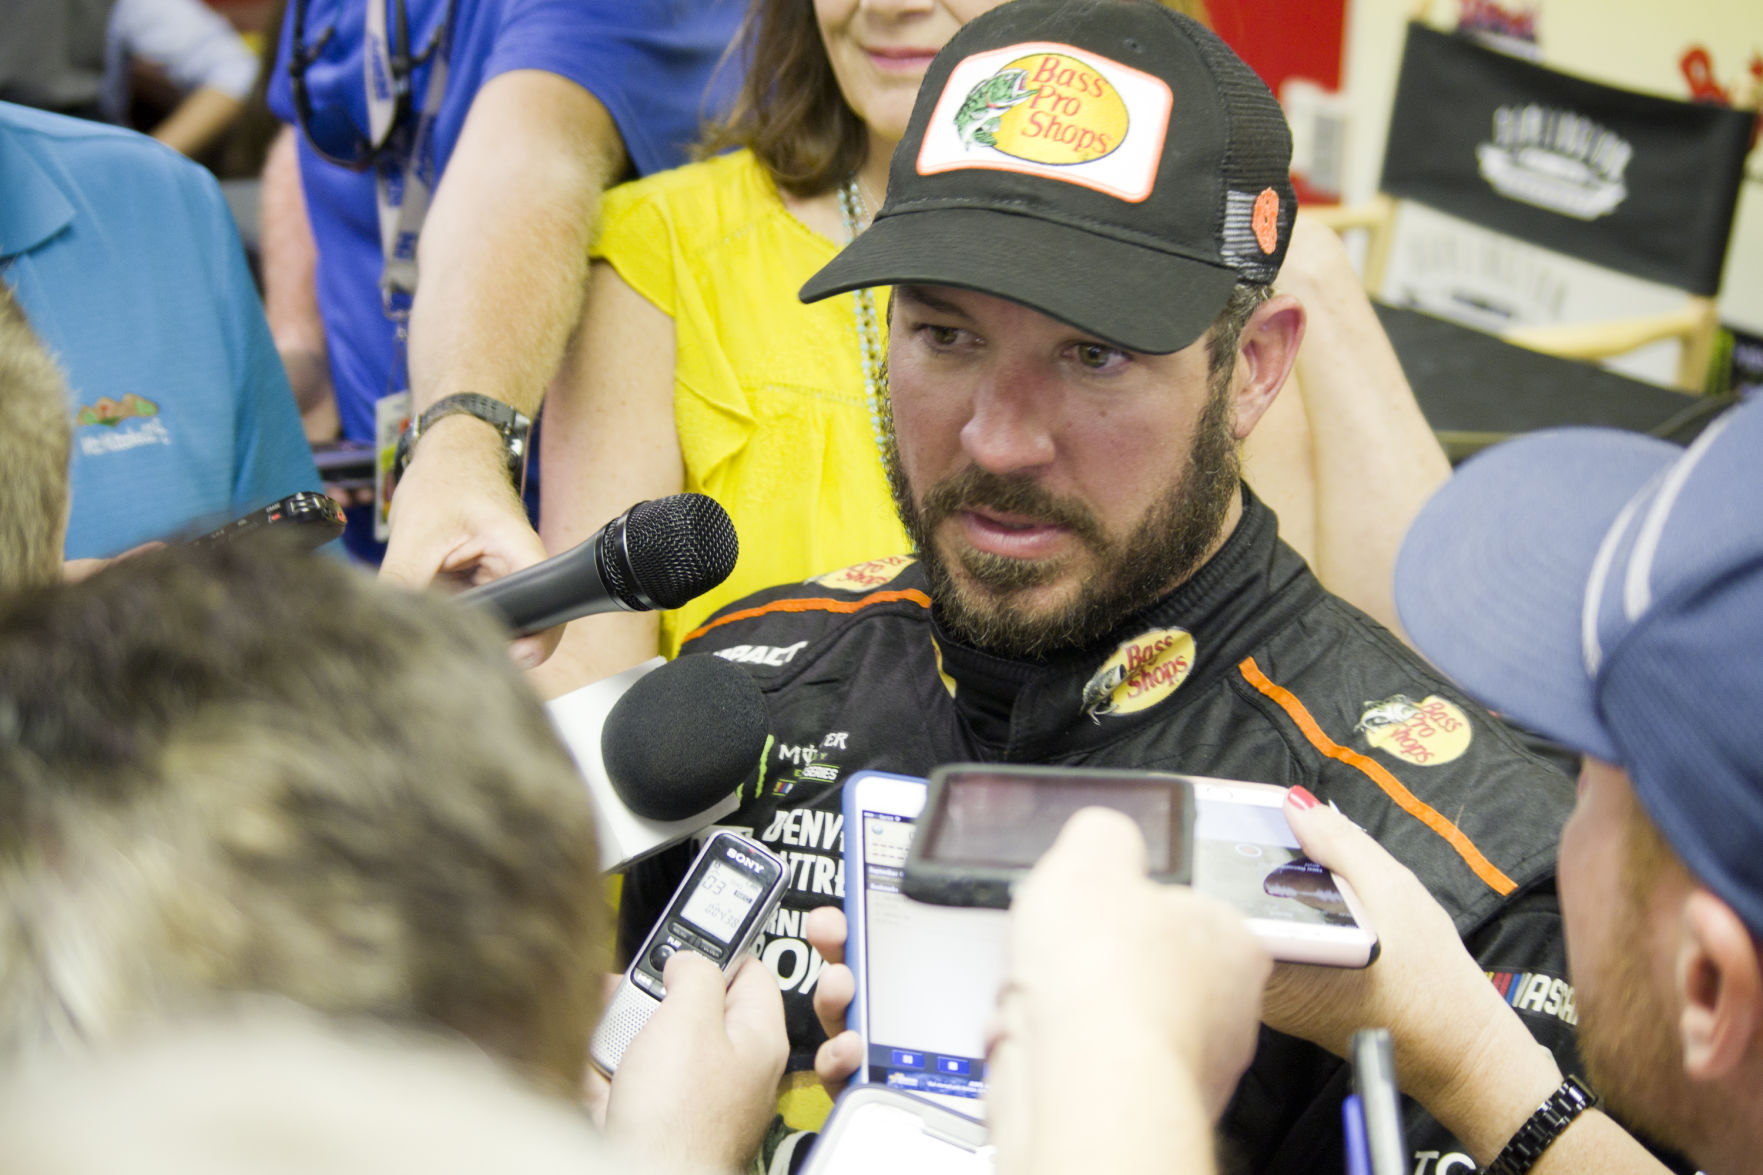 NASCAR playoffs: Standings, bubble drivers entering final regular-season race